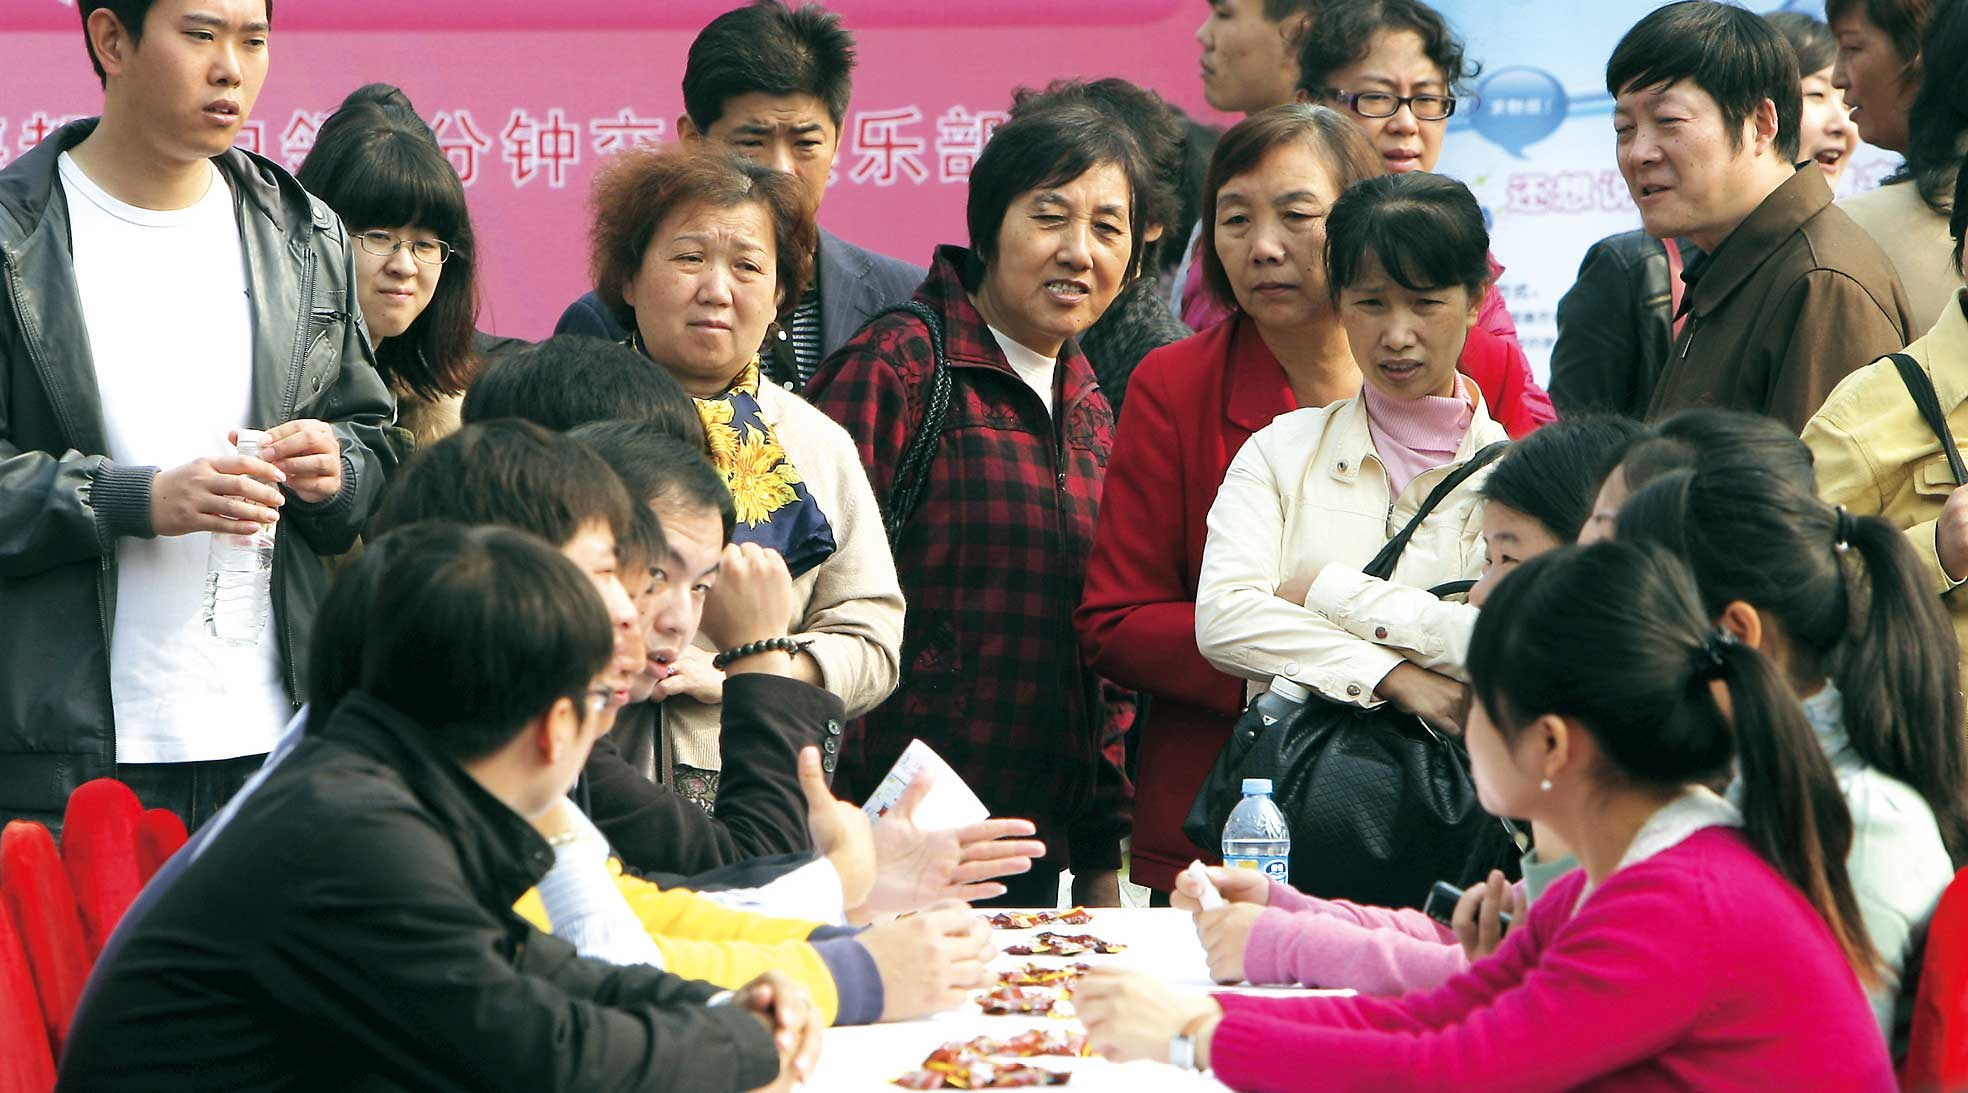 Anxious Chinese parents look on as their children participate in a speed dating event in Shanghai. — Wang Rongjiang